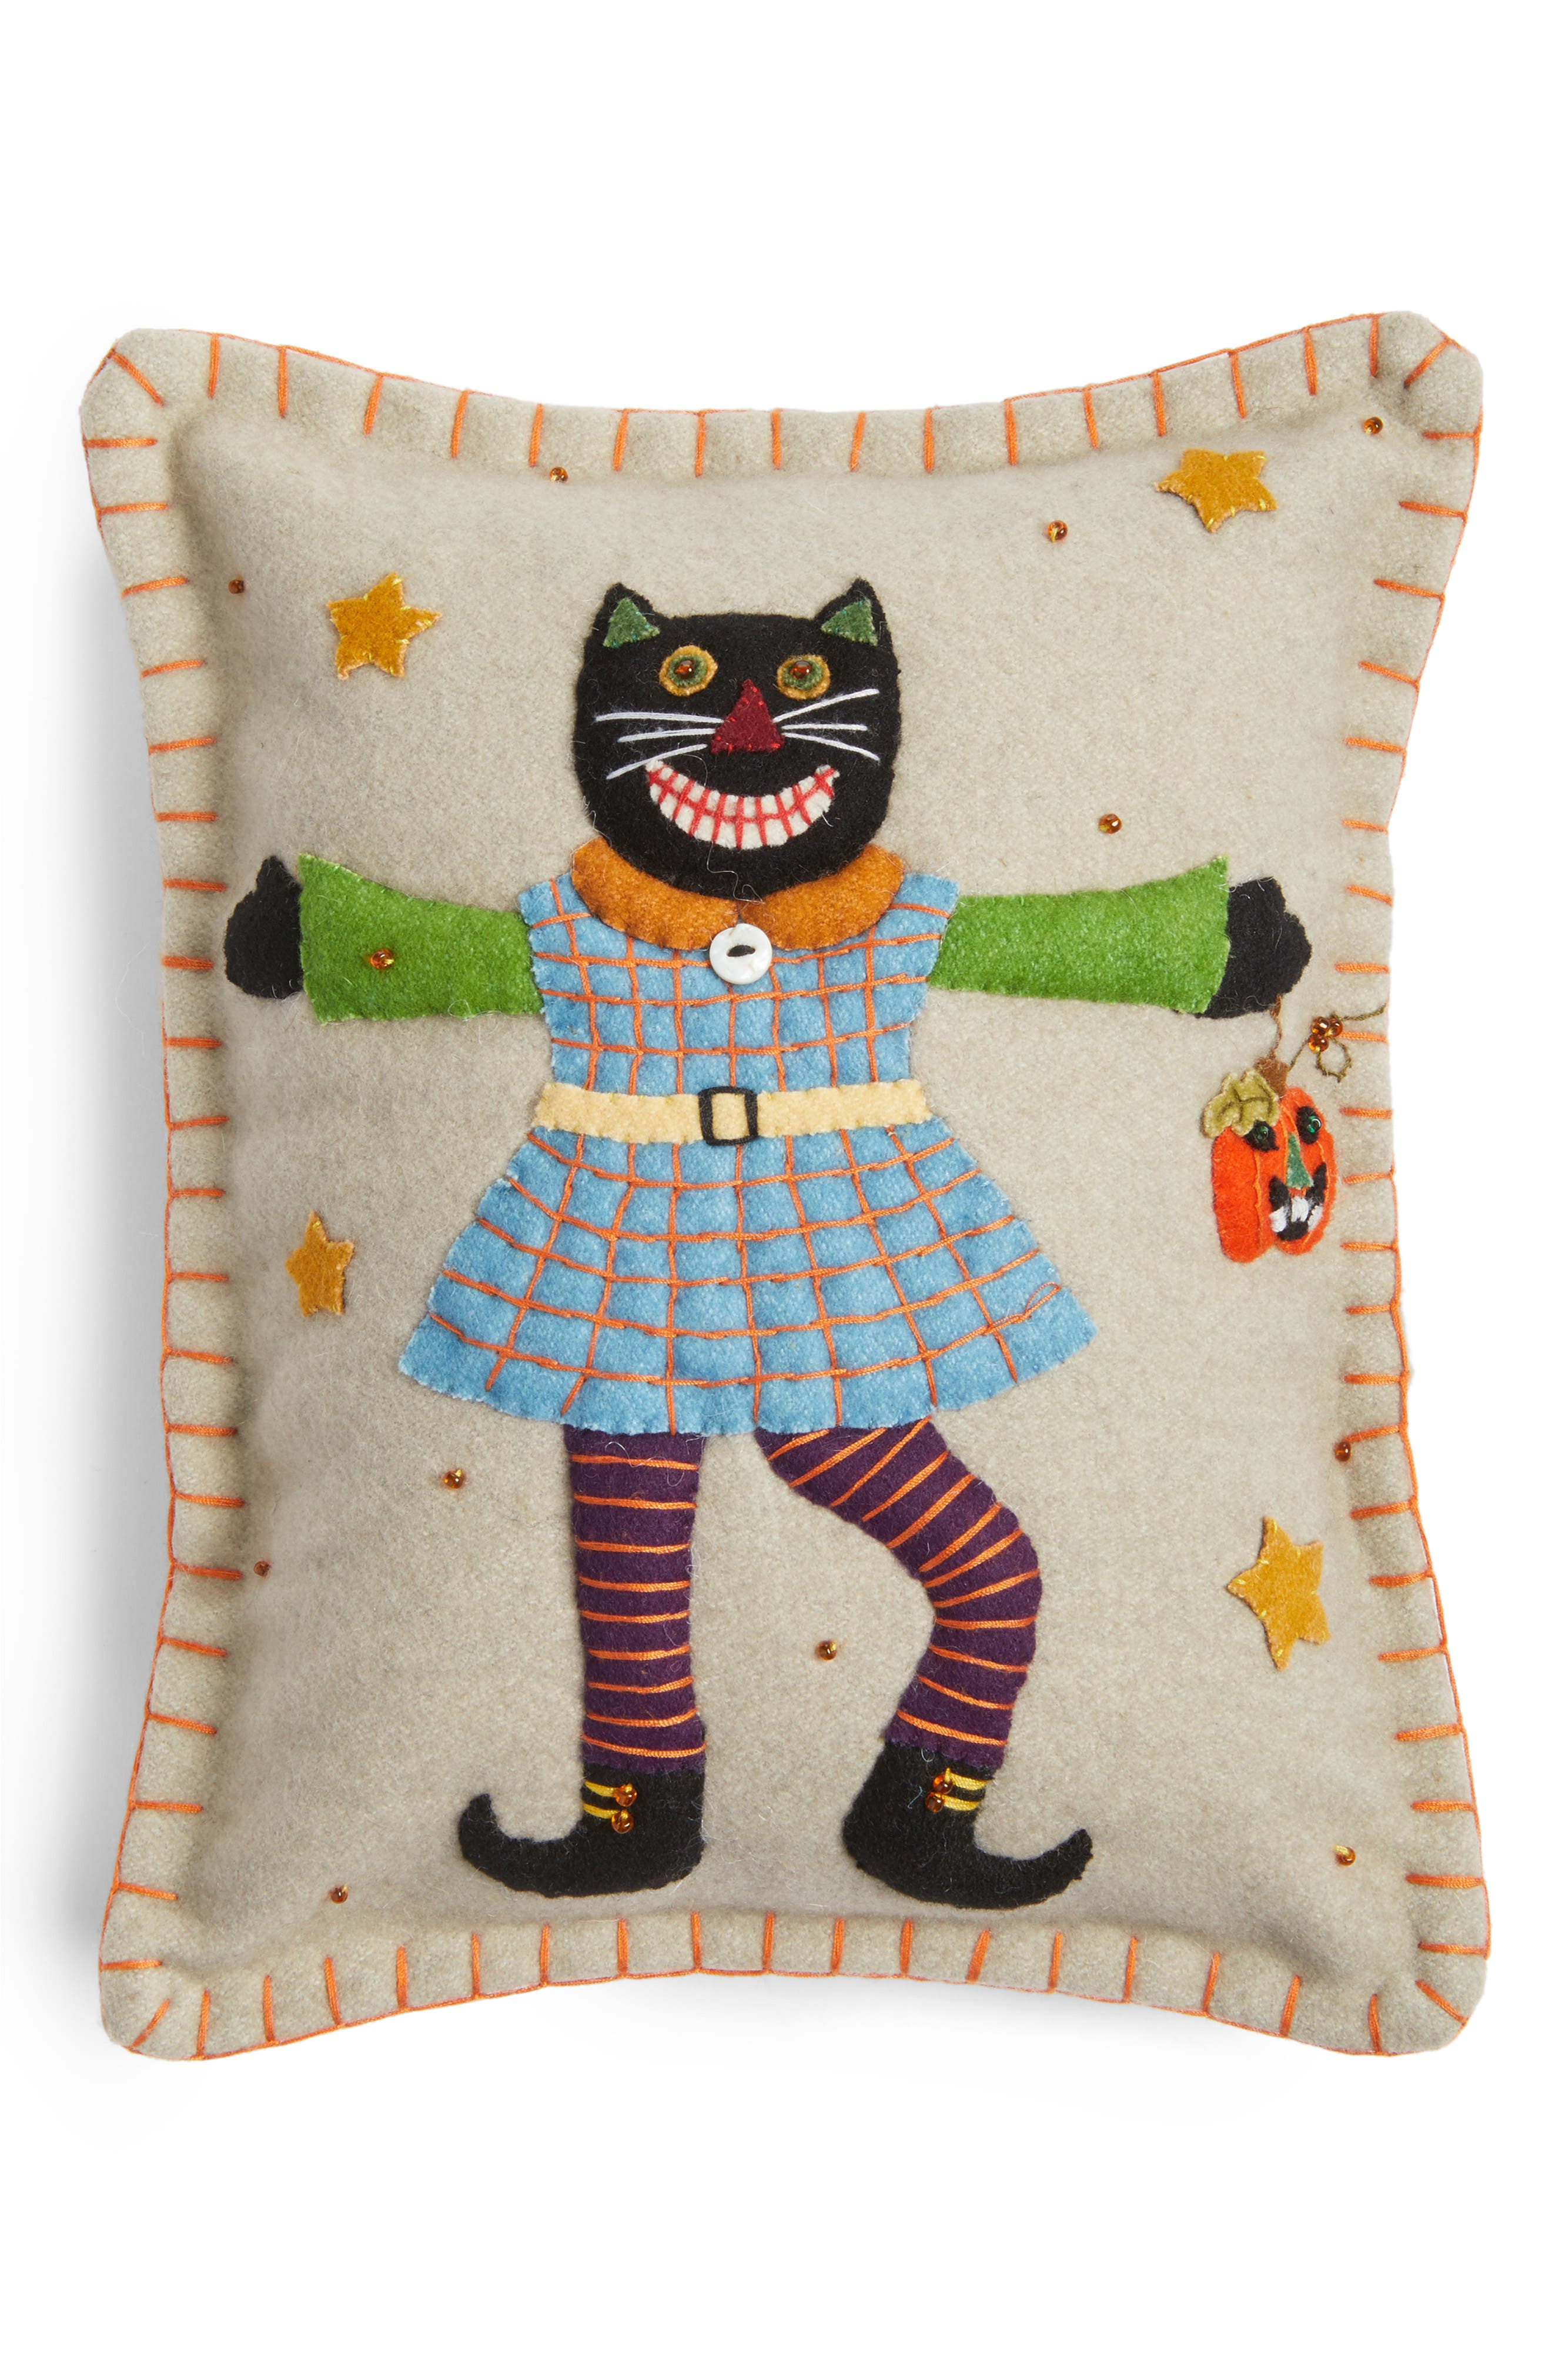 New World Arts Black Cat Accent Pillow